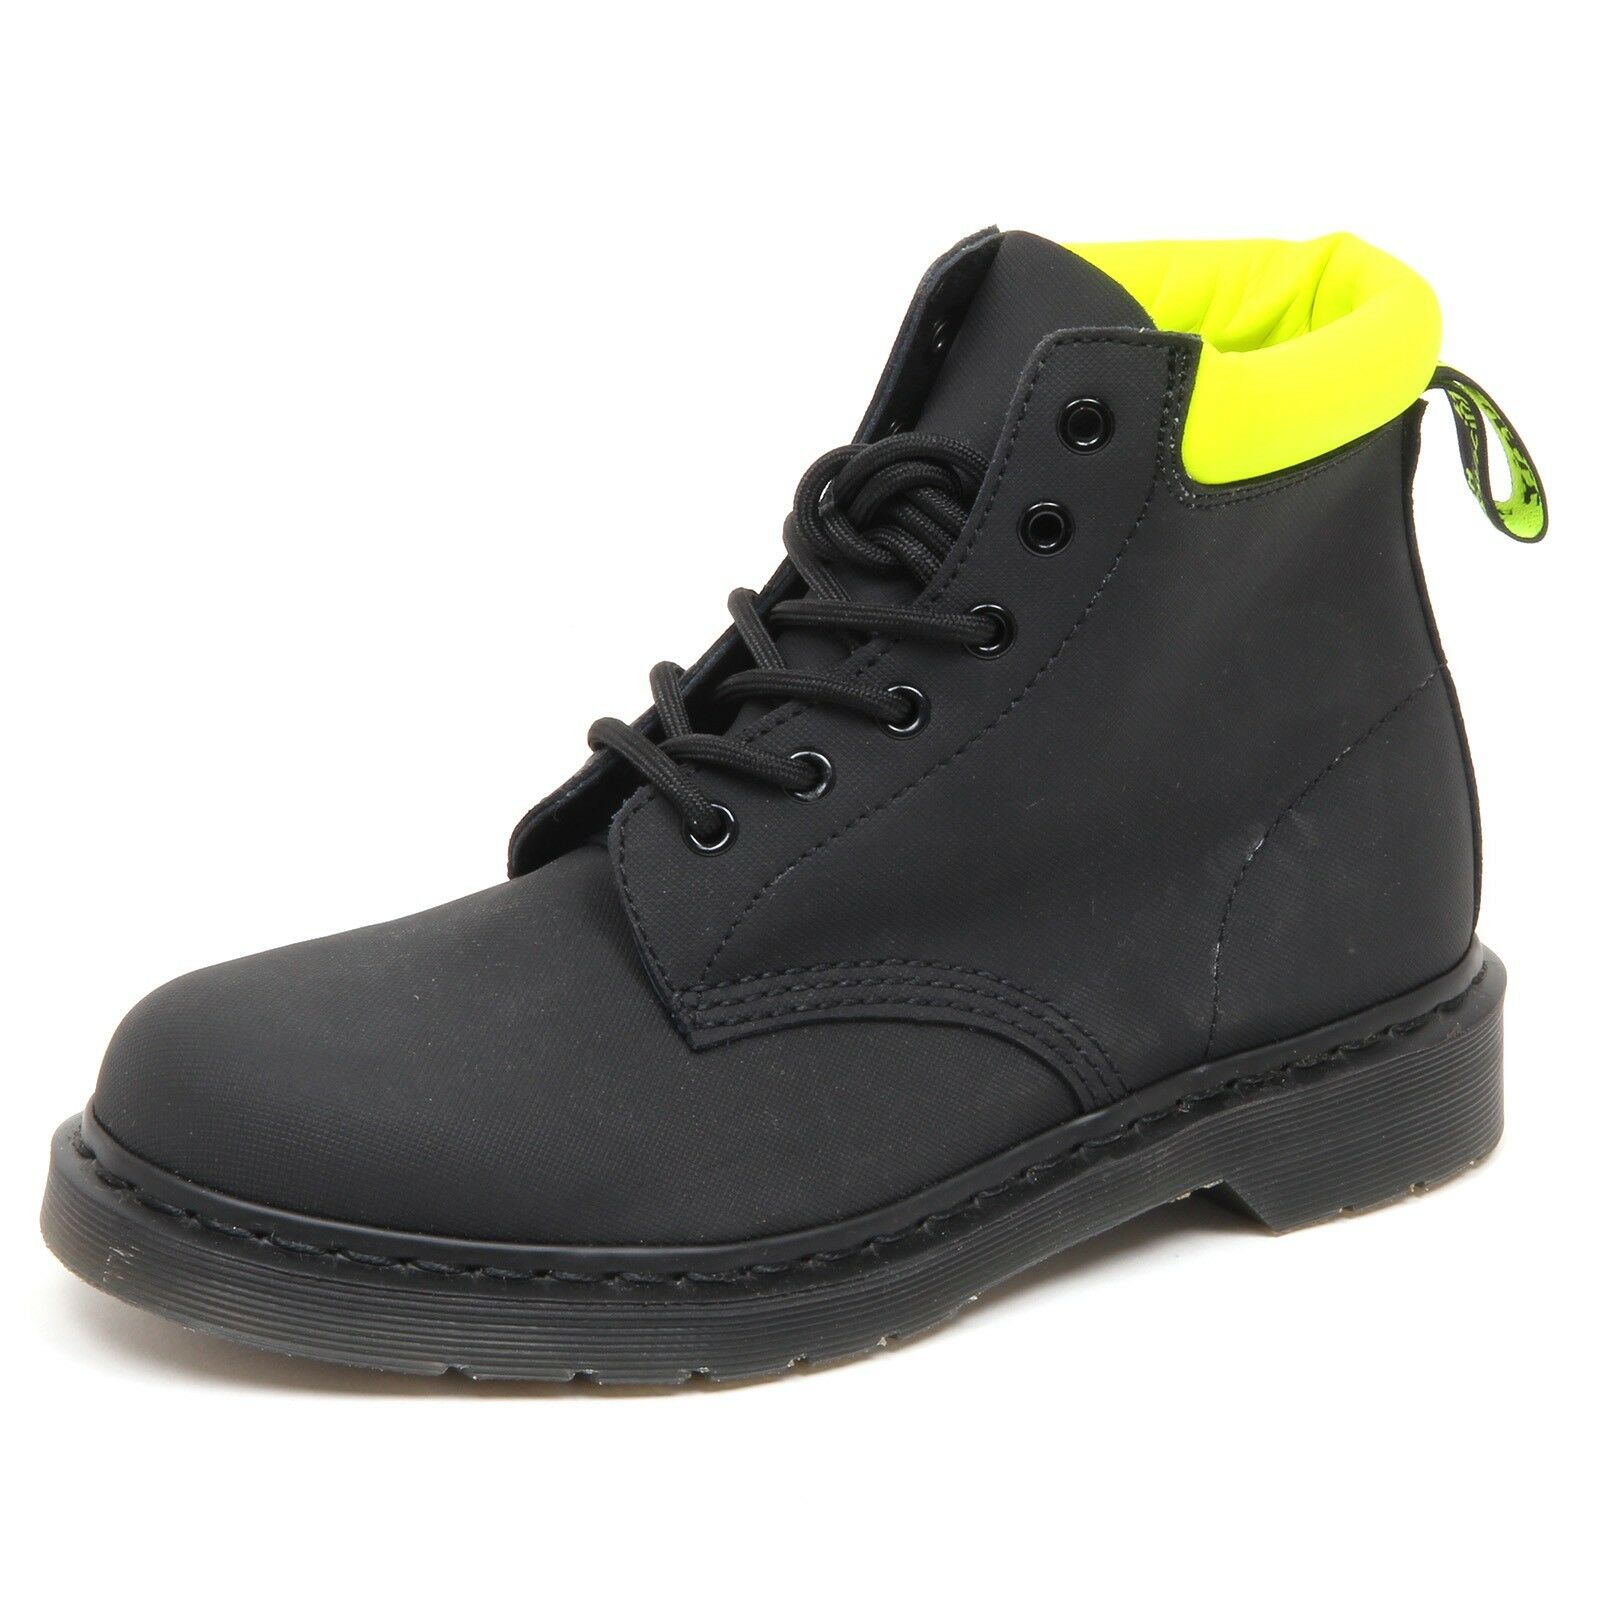 D8228 (SAMPLE NOT FOR SALE WITHOUT BOX) scarpa uomo DR. MARTENS 939 boot man